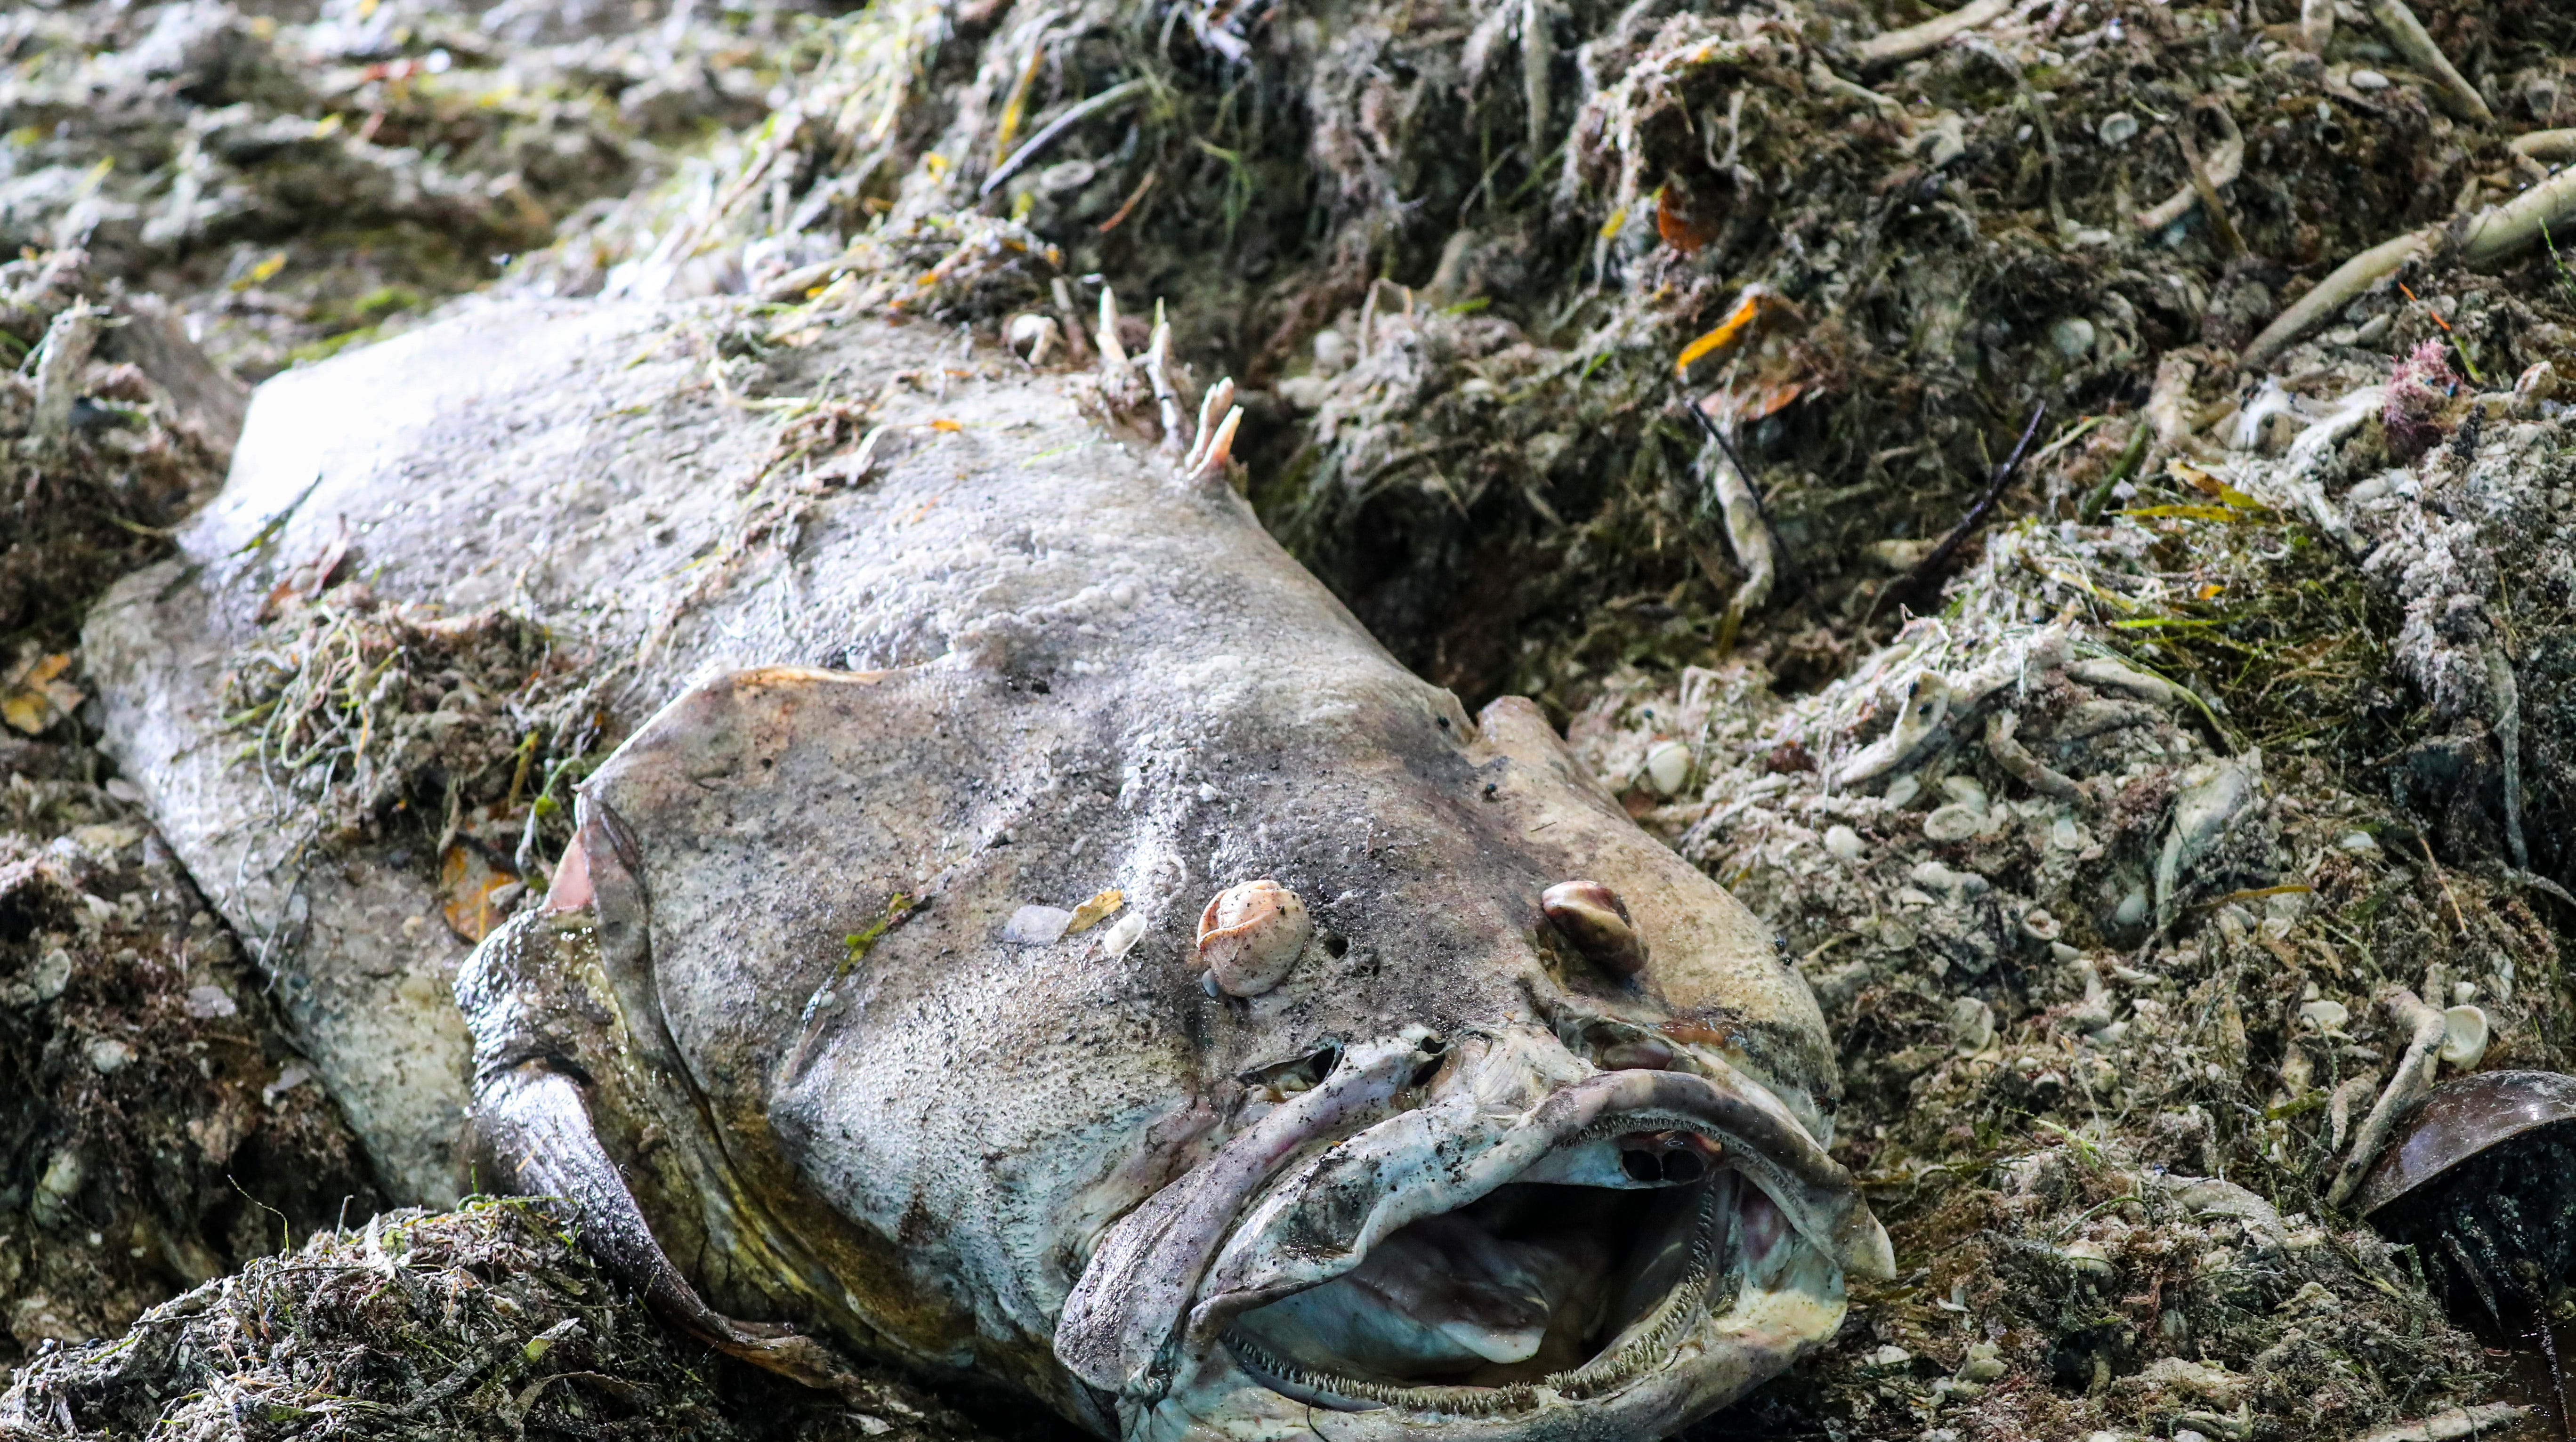 Florida algae crisis: Millions of pounds of fish, sea life burned at solid waste facility